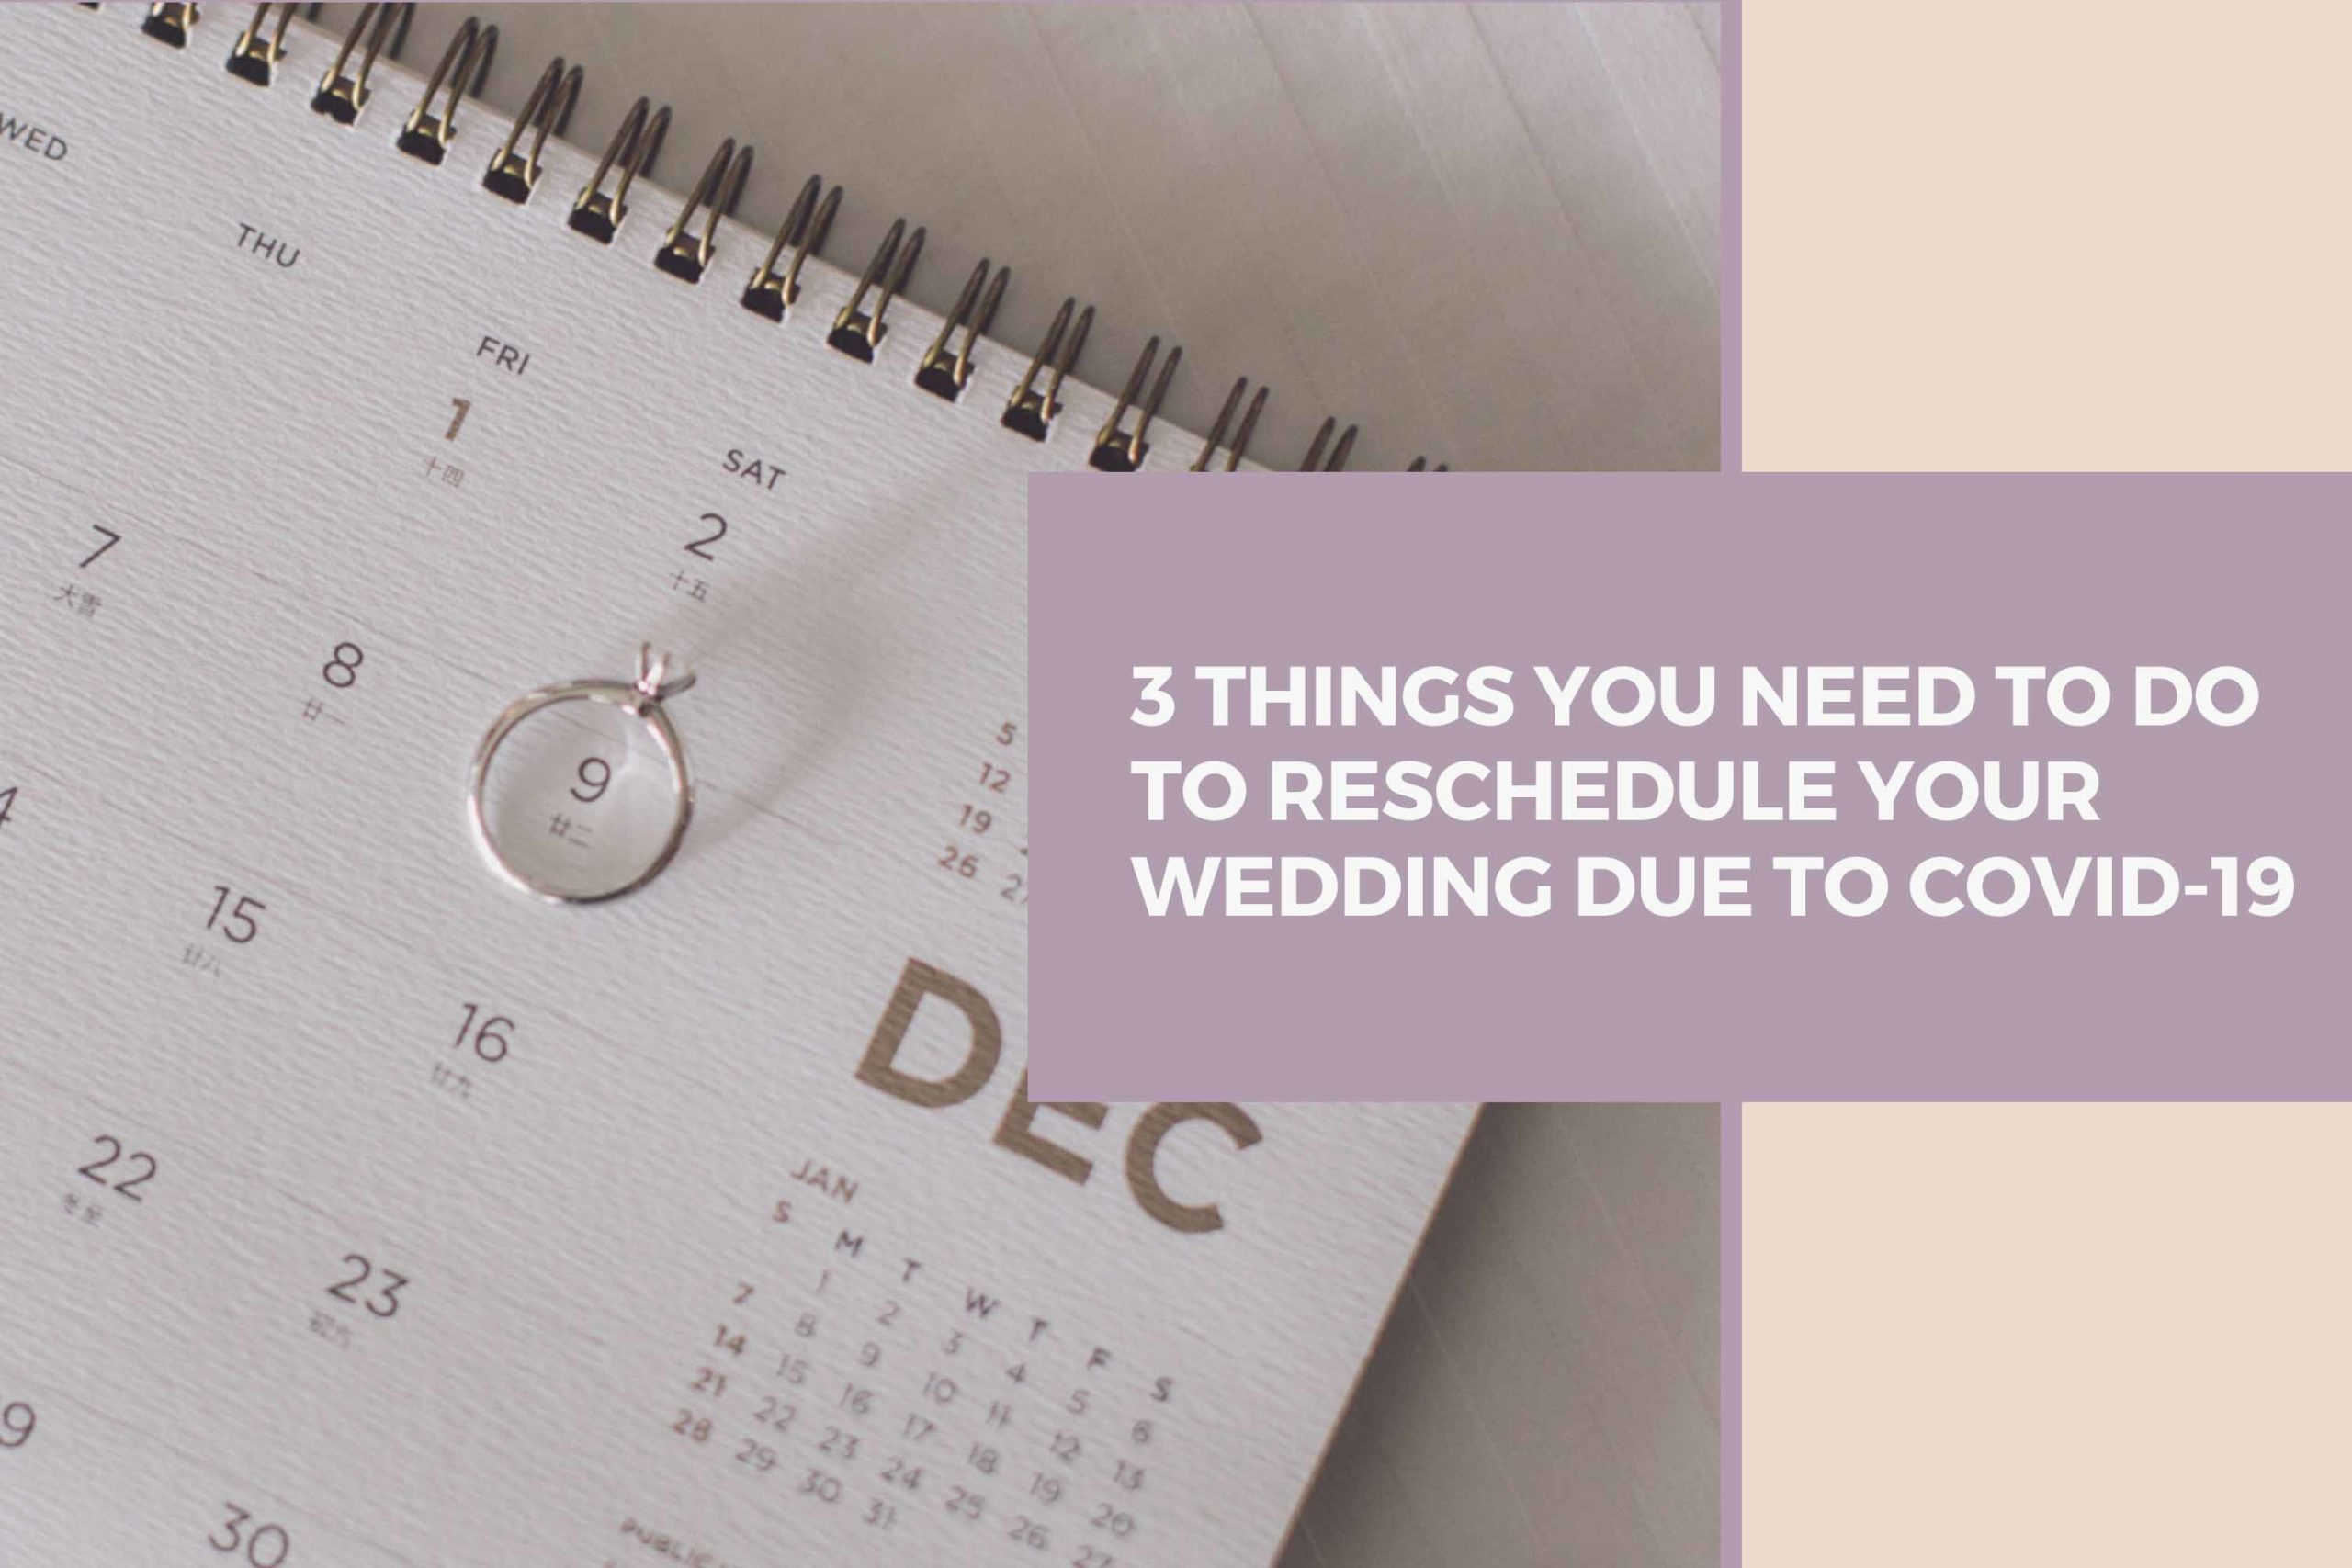 3 Things You Need To Do To Reschedule Your Wedding Due To Covid-19